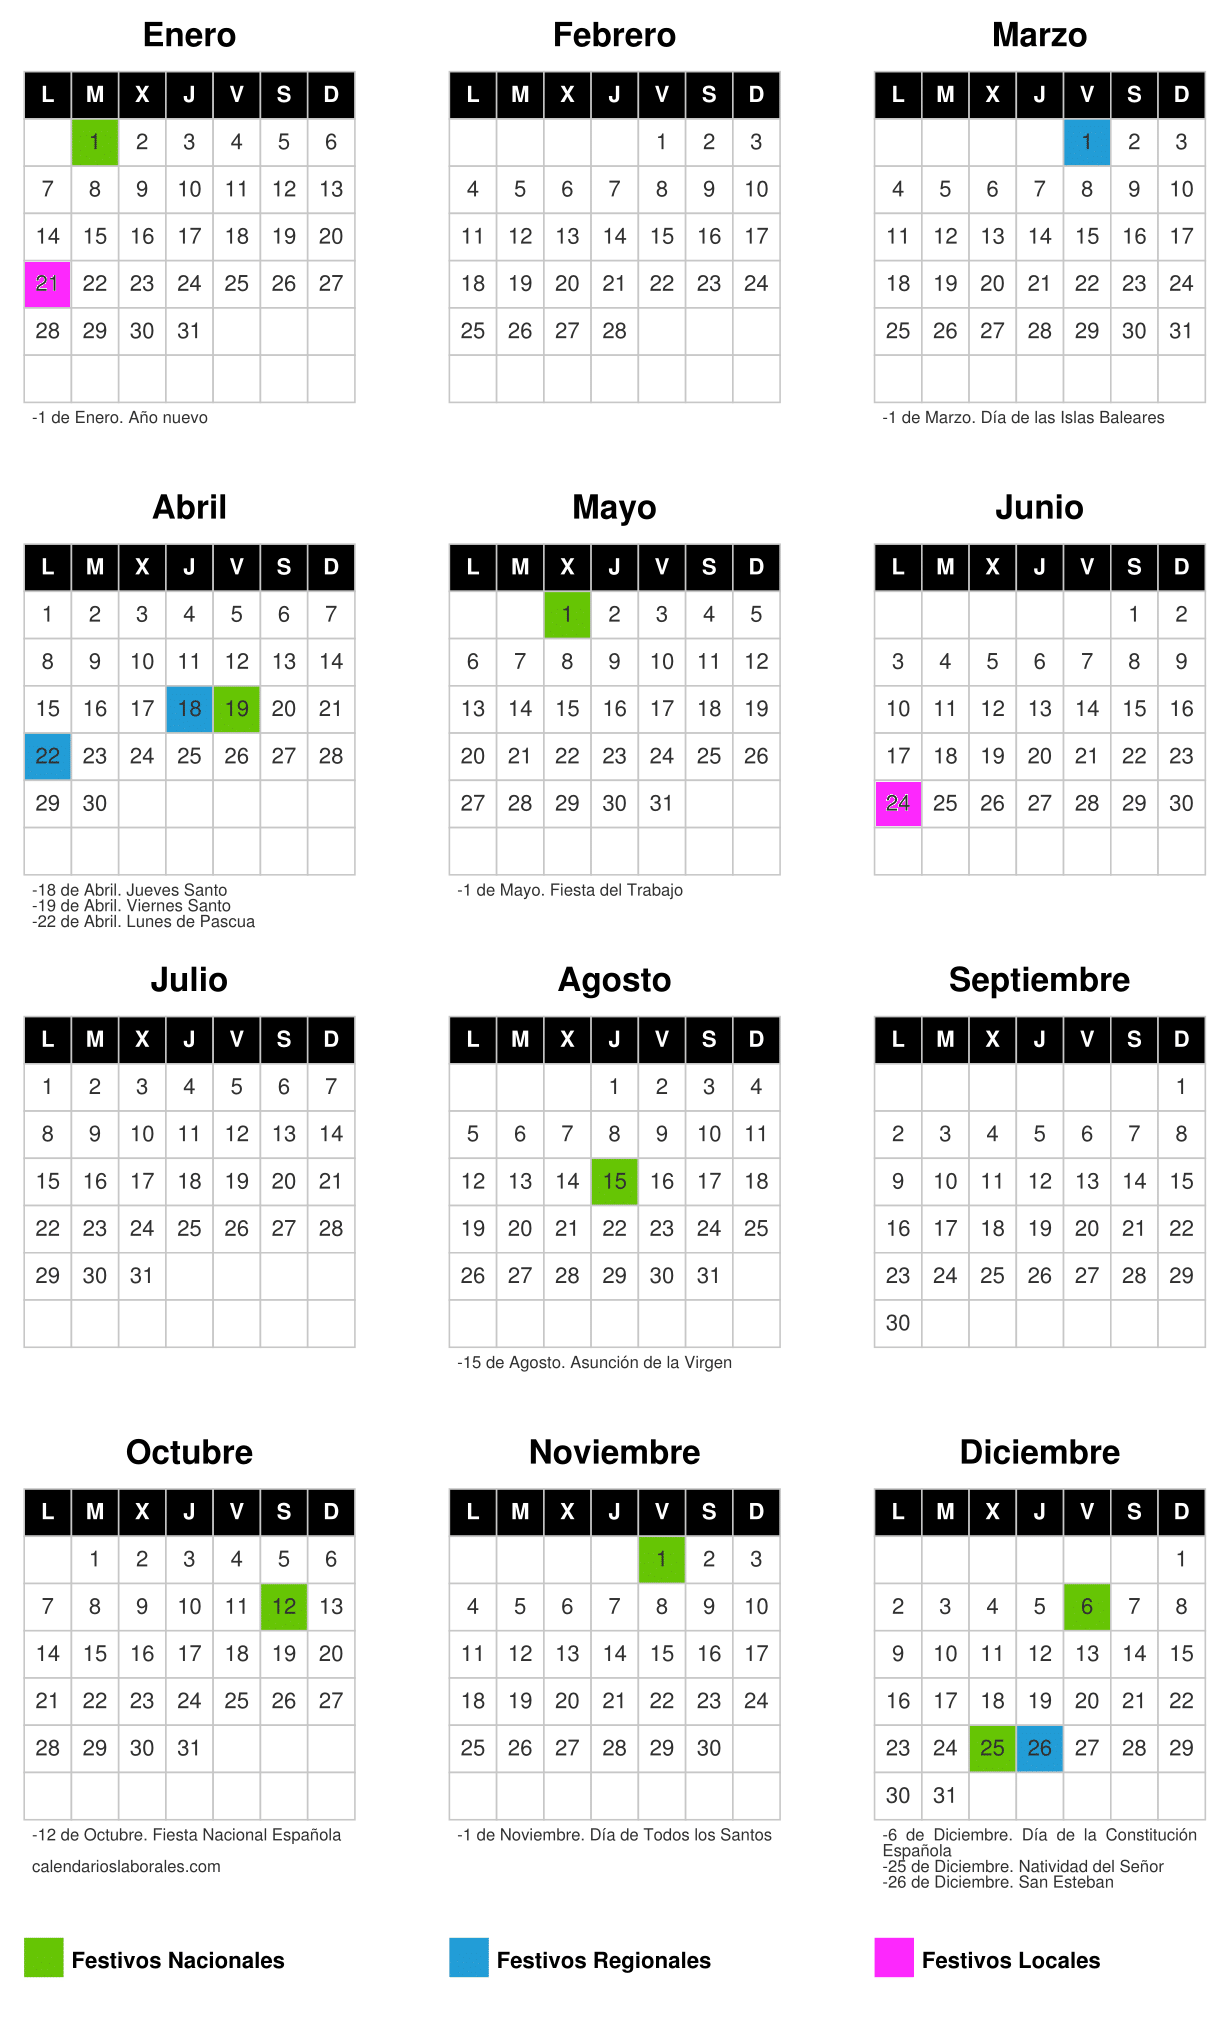 Calendario Laboral Palma De Mallorca 2019.Calendario Laboral 2019 Global4 Partner Premium De Wolters Kluwer